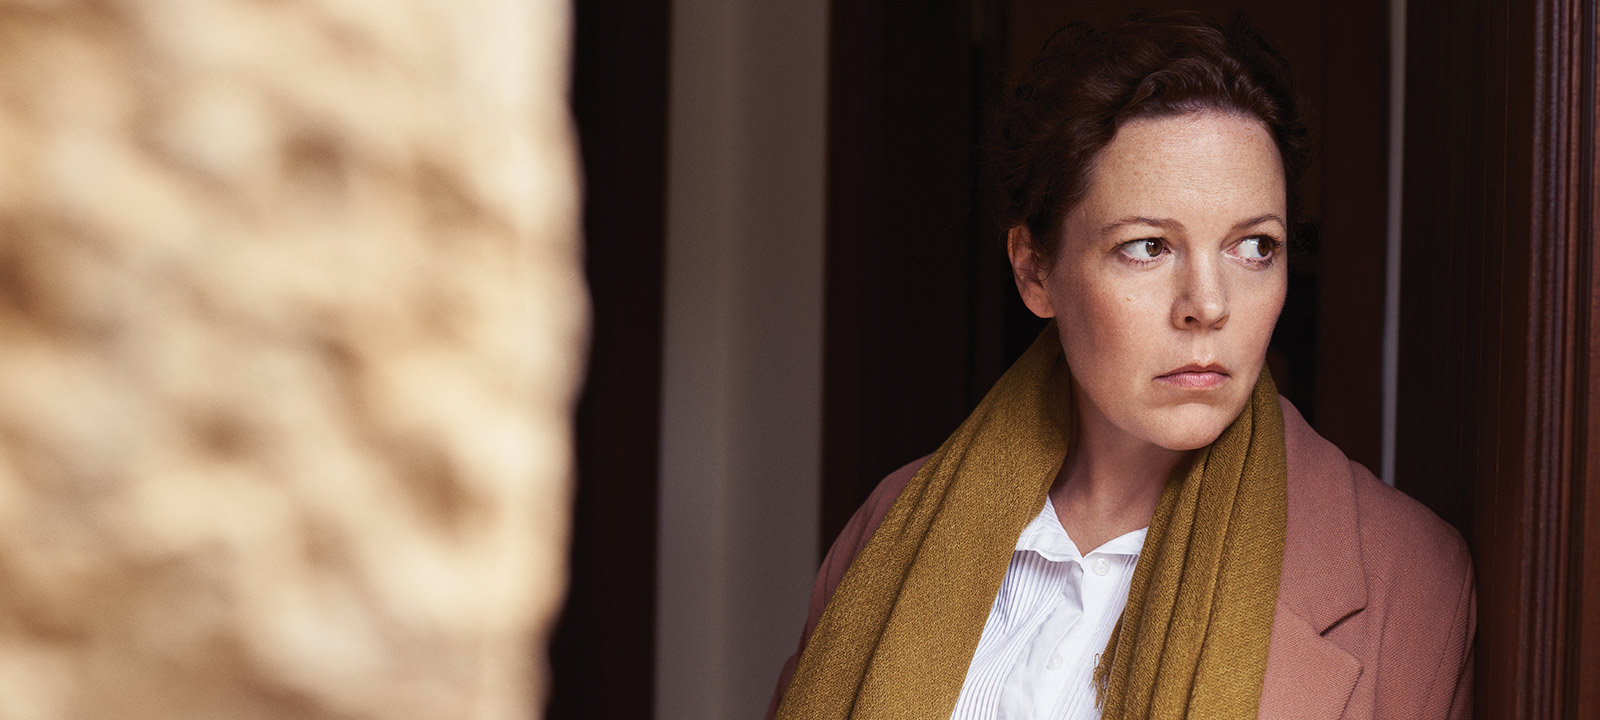 the-night-manager-103-angela-burr-olivia-colman-800×600